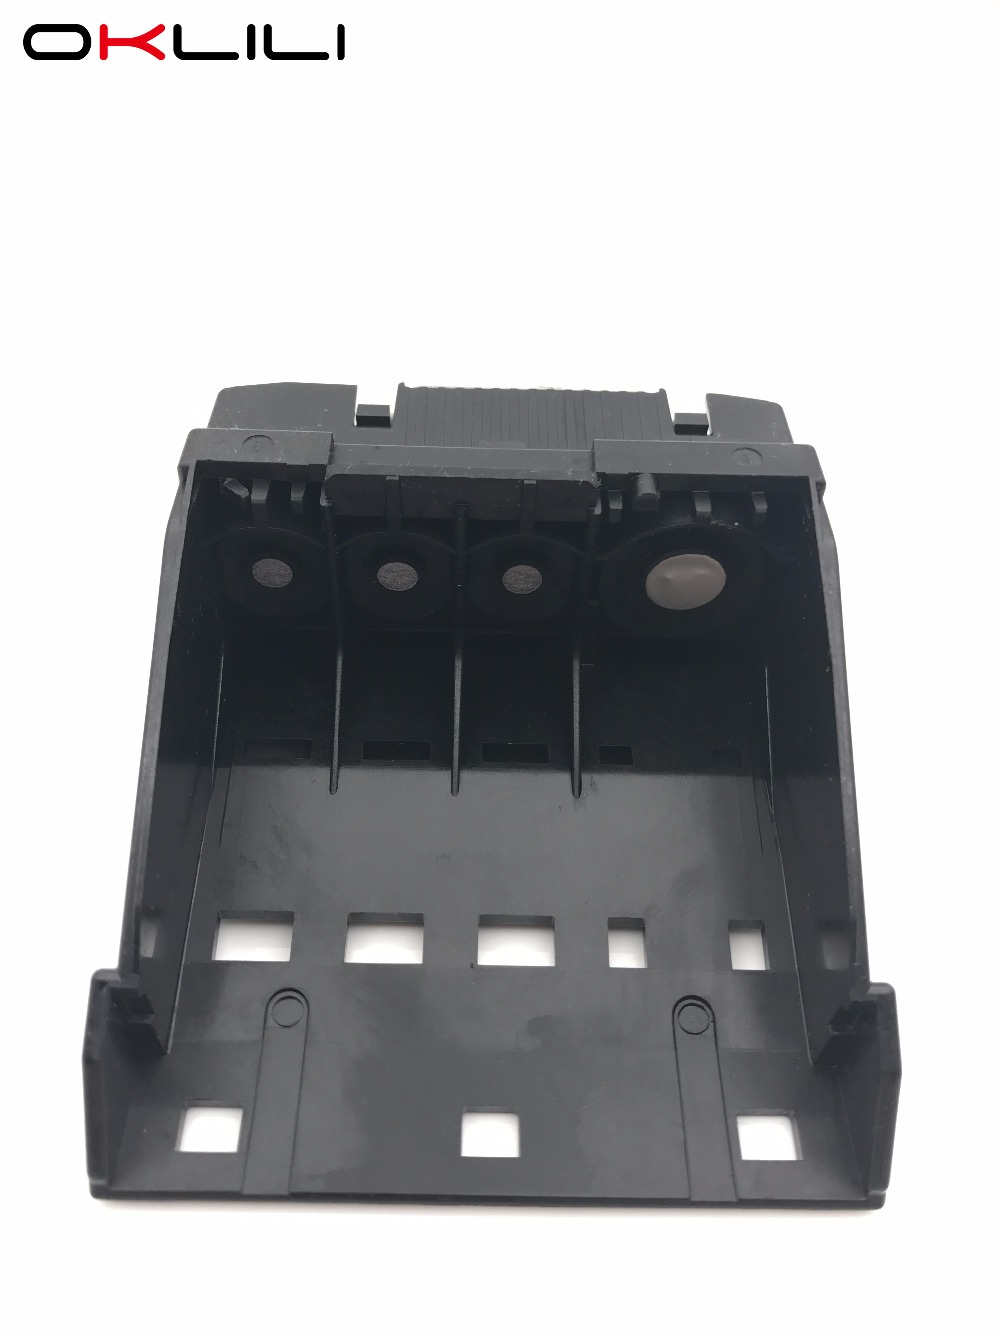 OKLILI ORIGINAL QY6-0045 QY6-0045-000 Printhead Print Head Printer Head for Canon i550 PIXUS 550i high quality original print head qy6 0057 printhead compatible for canon ip5000 ip5000r printer head